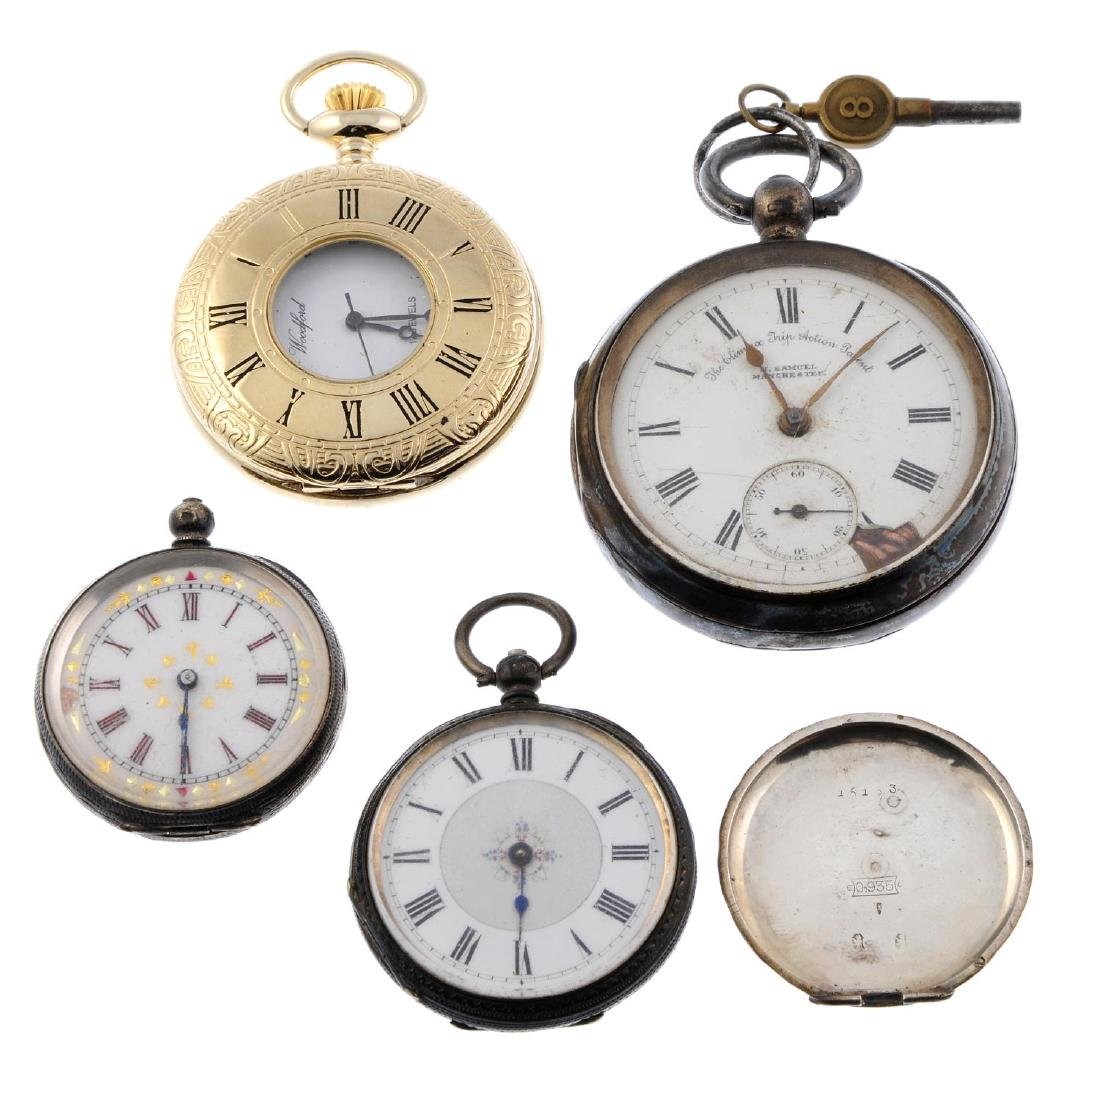 A group of four assorted pocket watches, to include